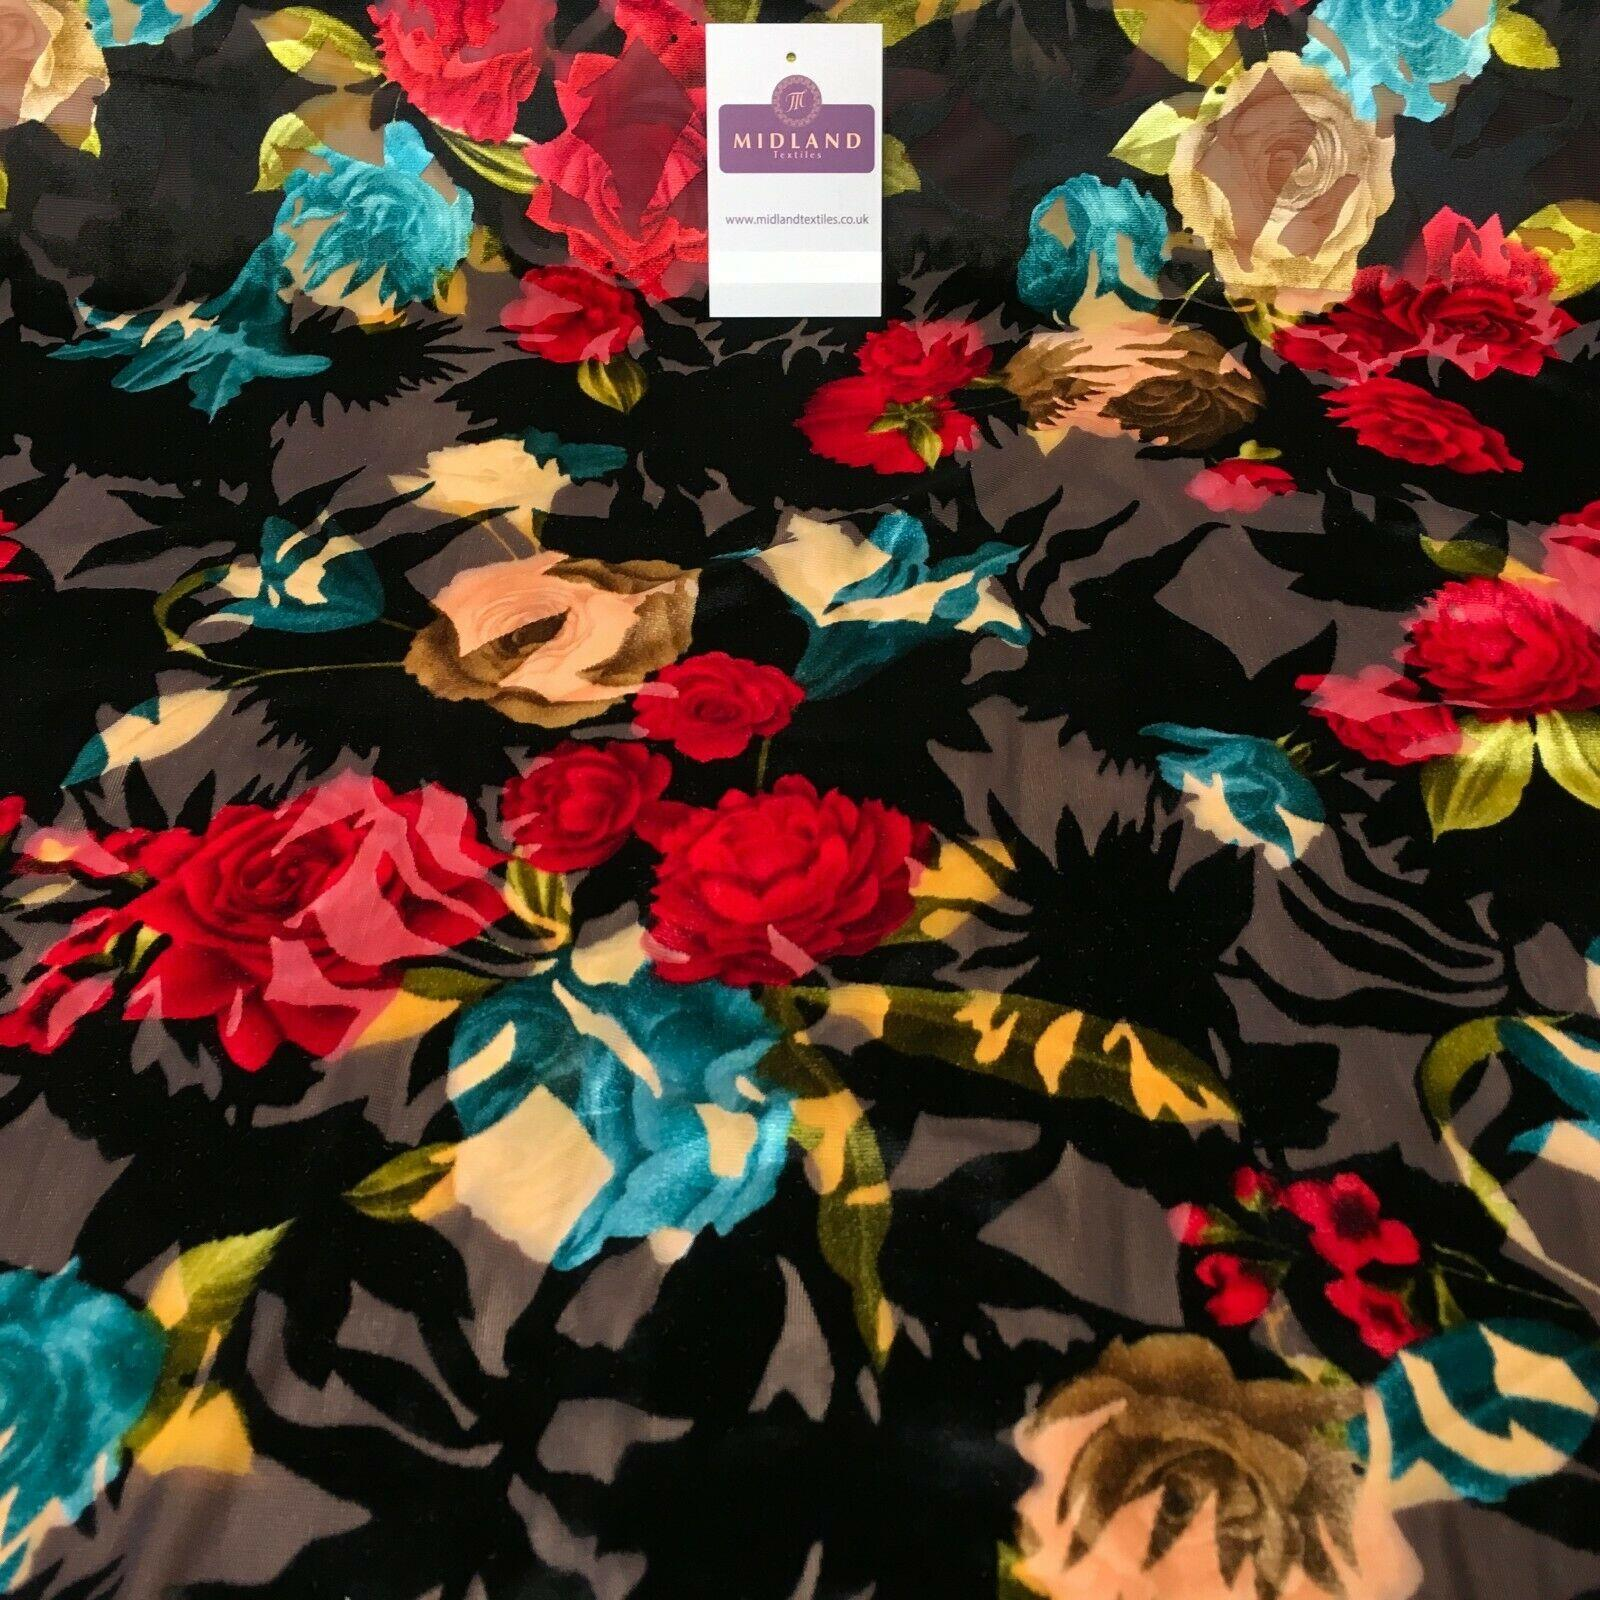 Black Brown Burnout Vintage Floral velvet dress Fabric 147 cm wide MA1094-1